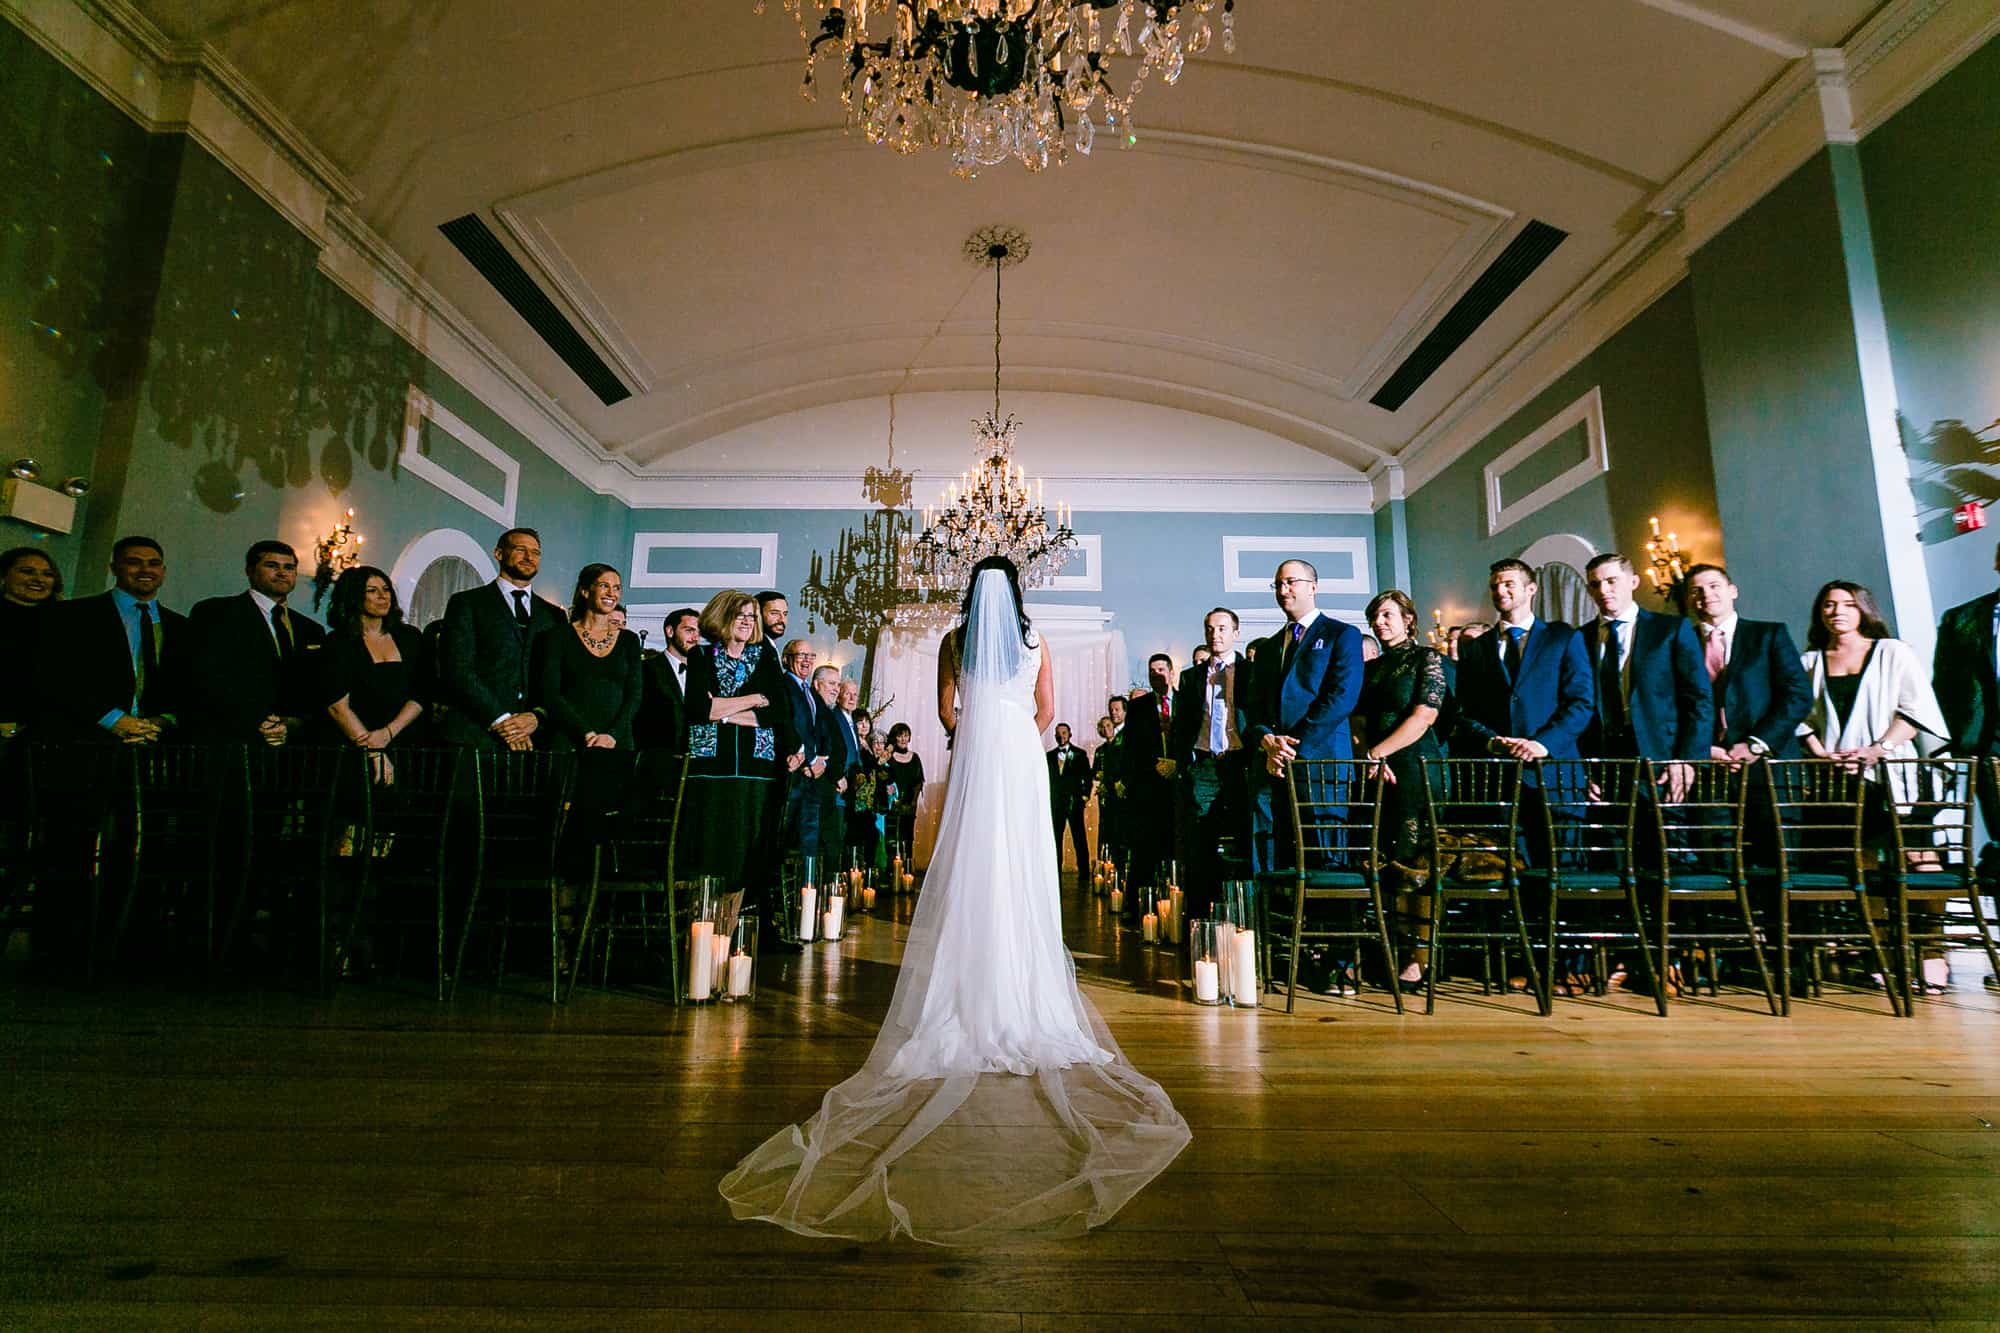 Bride entering ceremony at Waterworks in Philadelphia